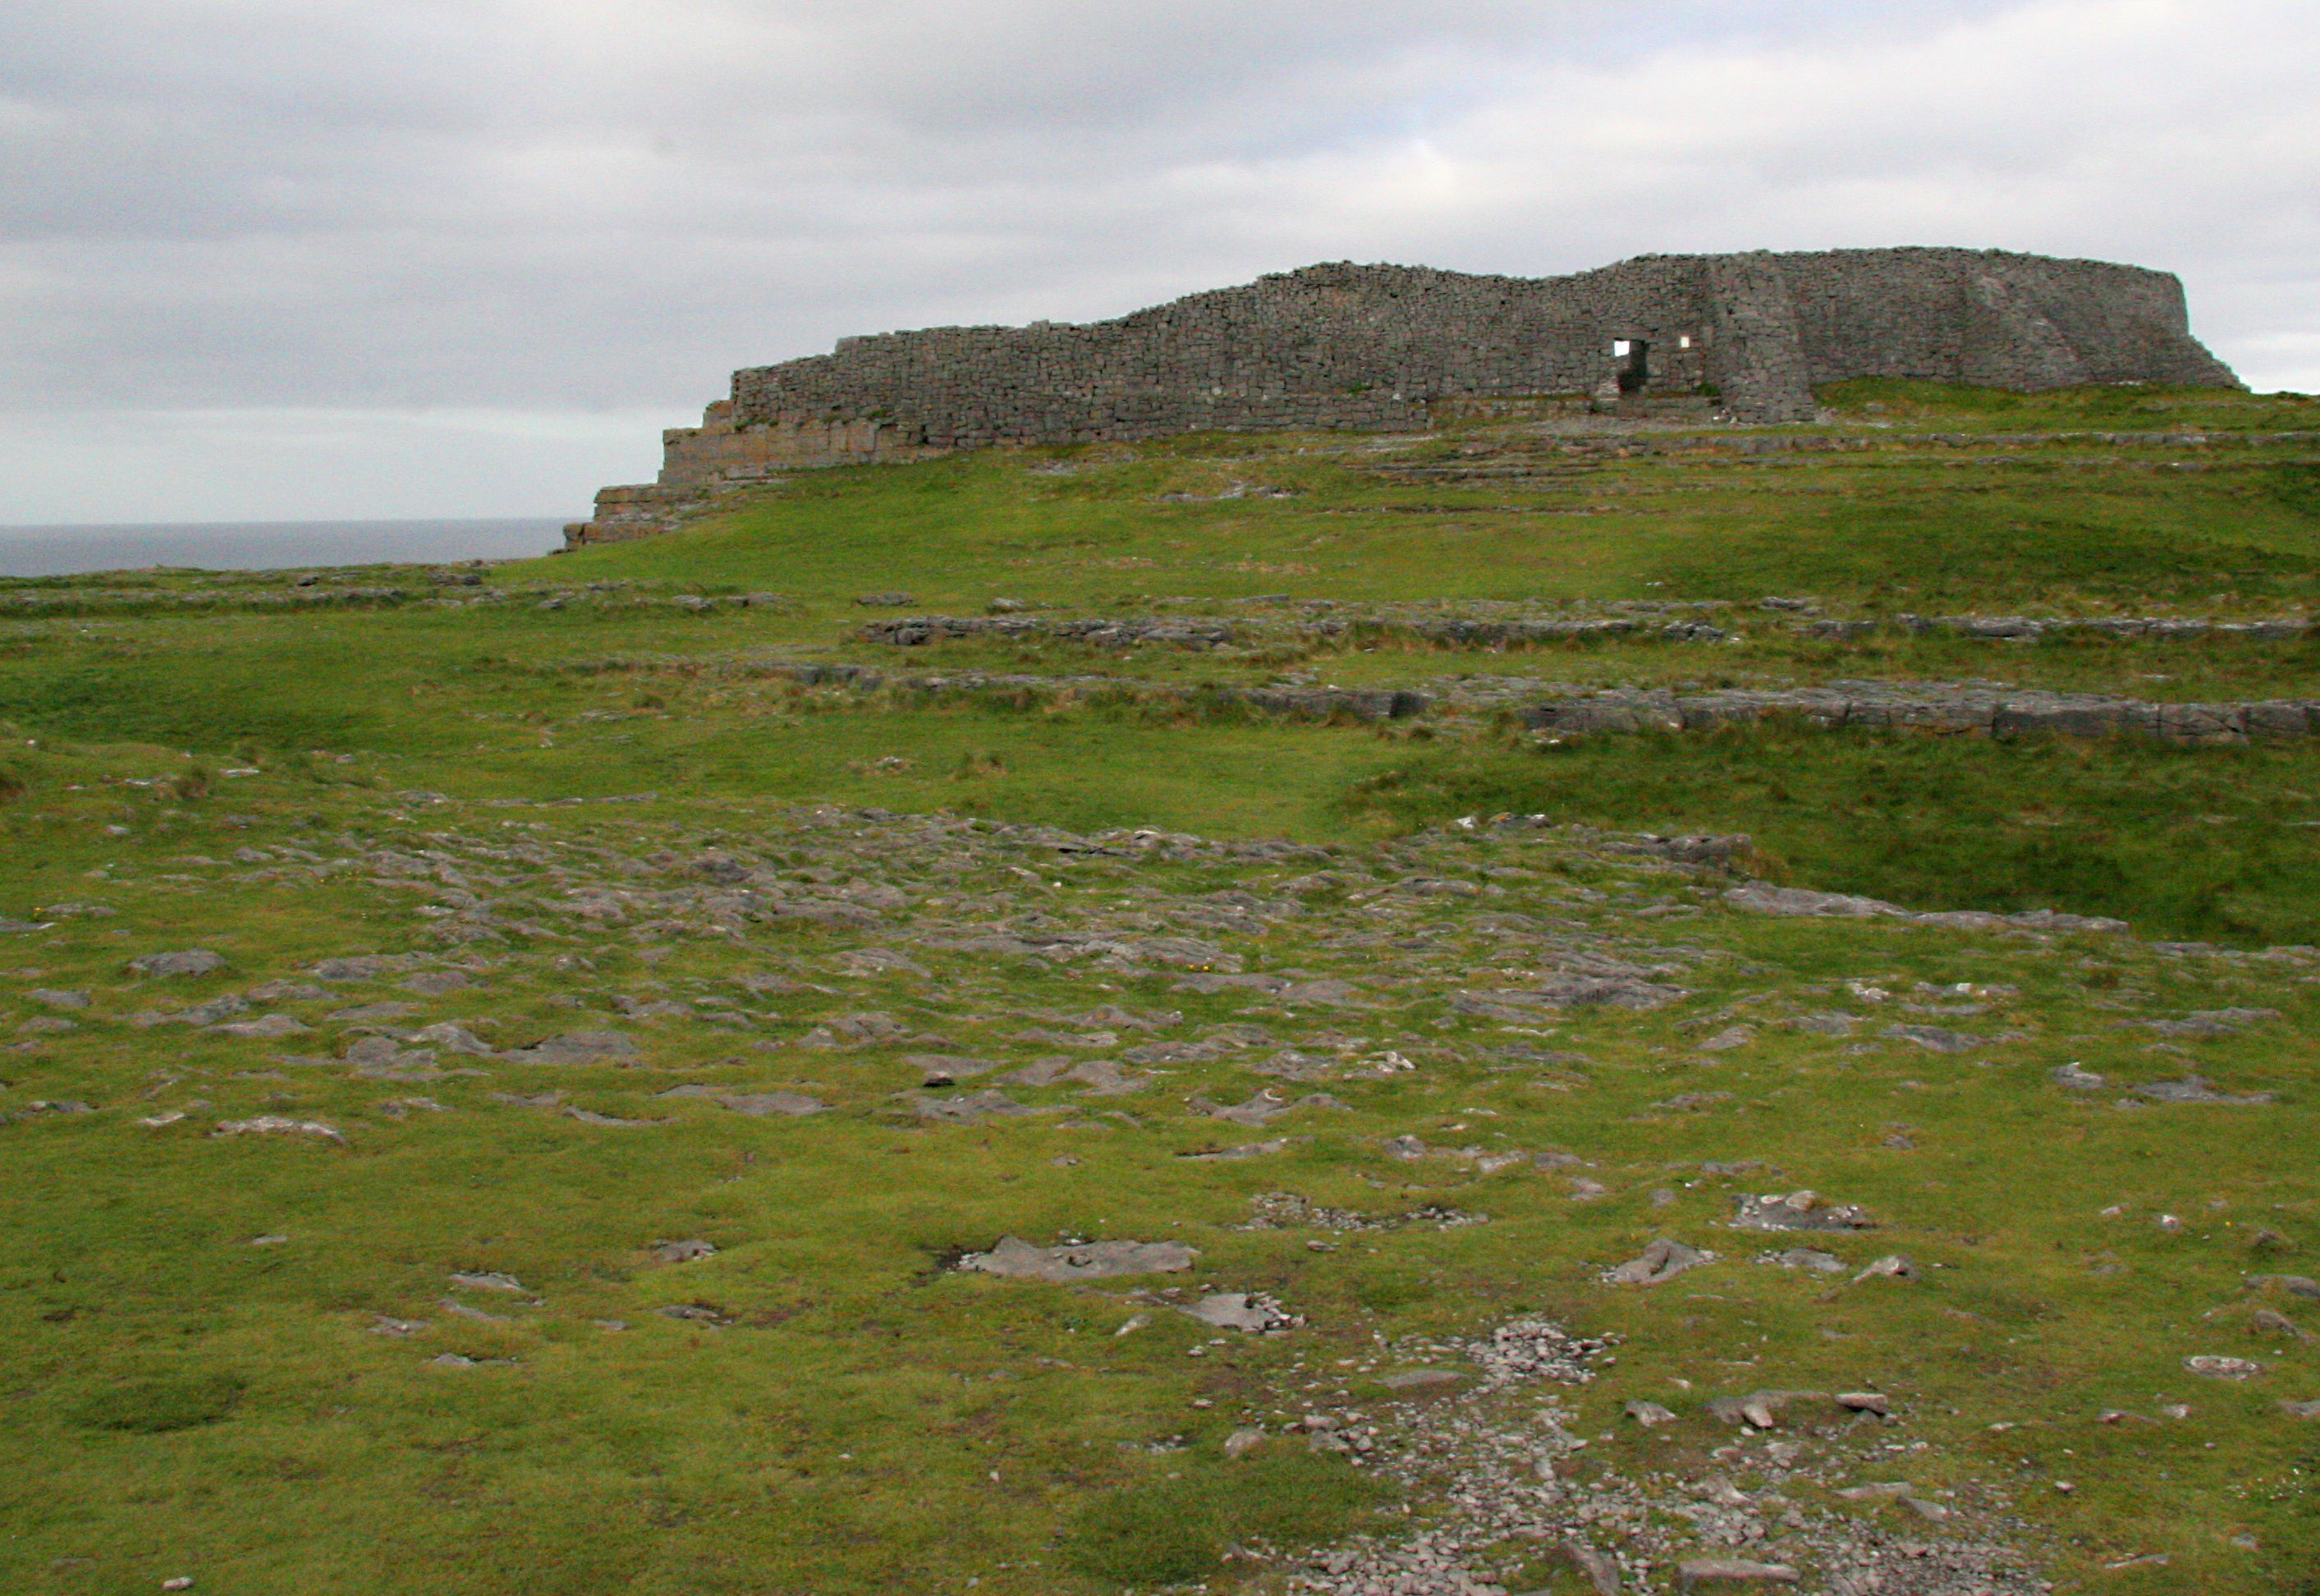 Celtic stone fort, Aran Islands Ireland 1.jpg